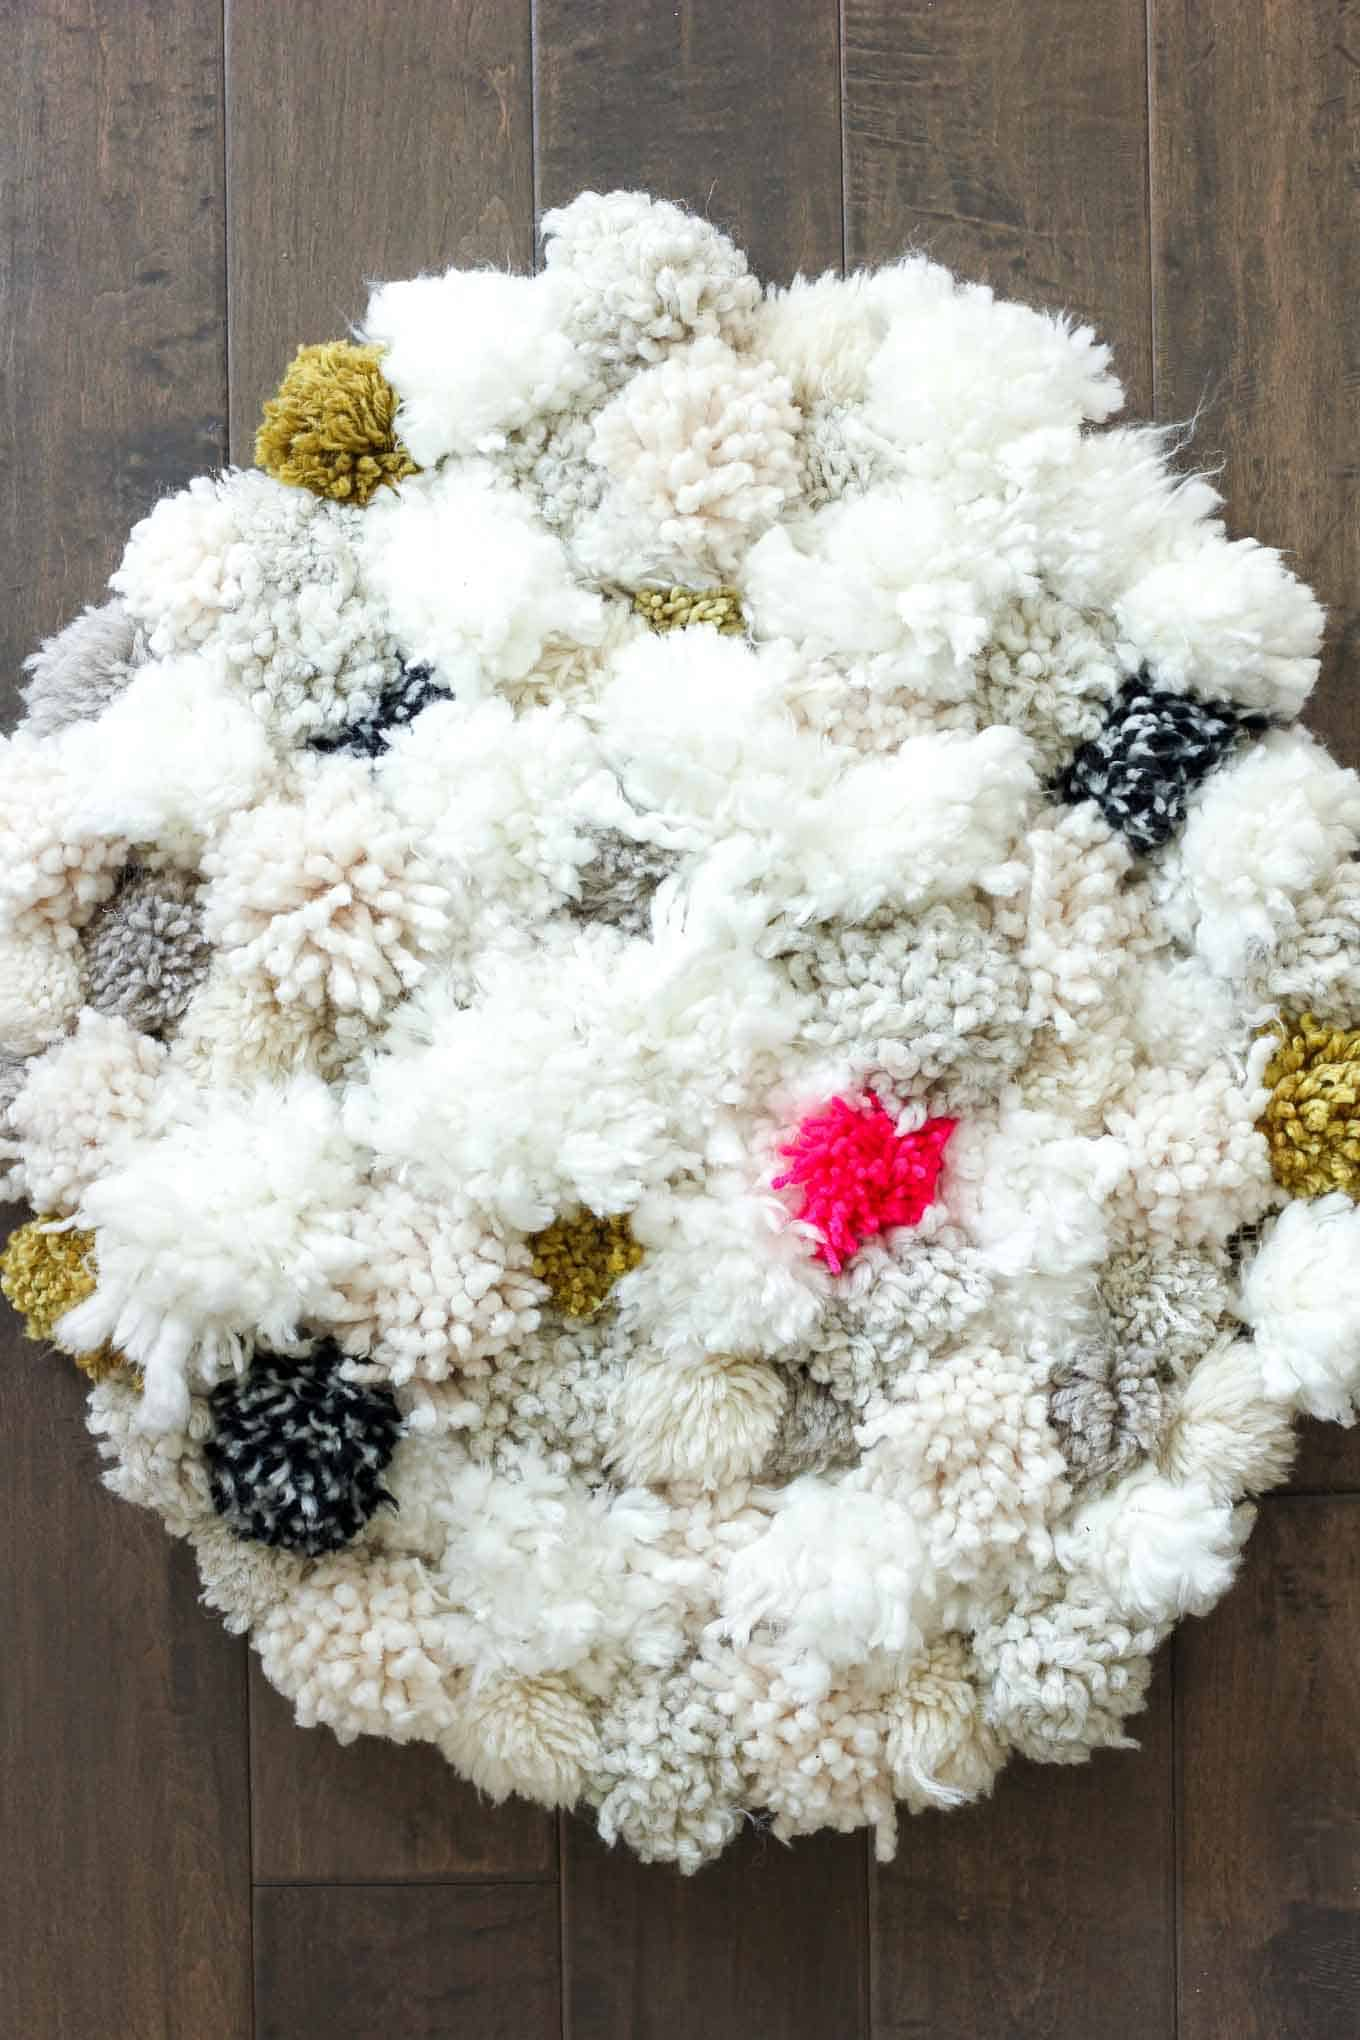 How to make a diy pom pom rug